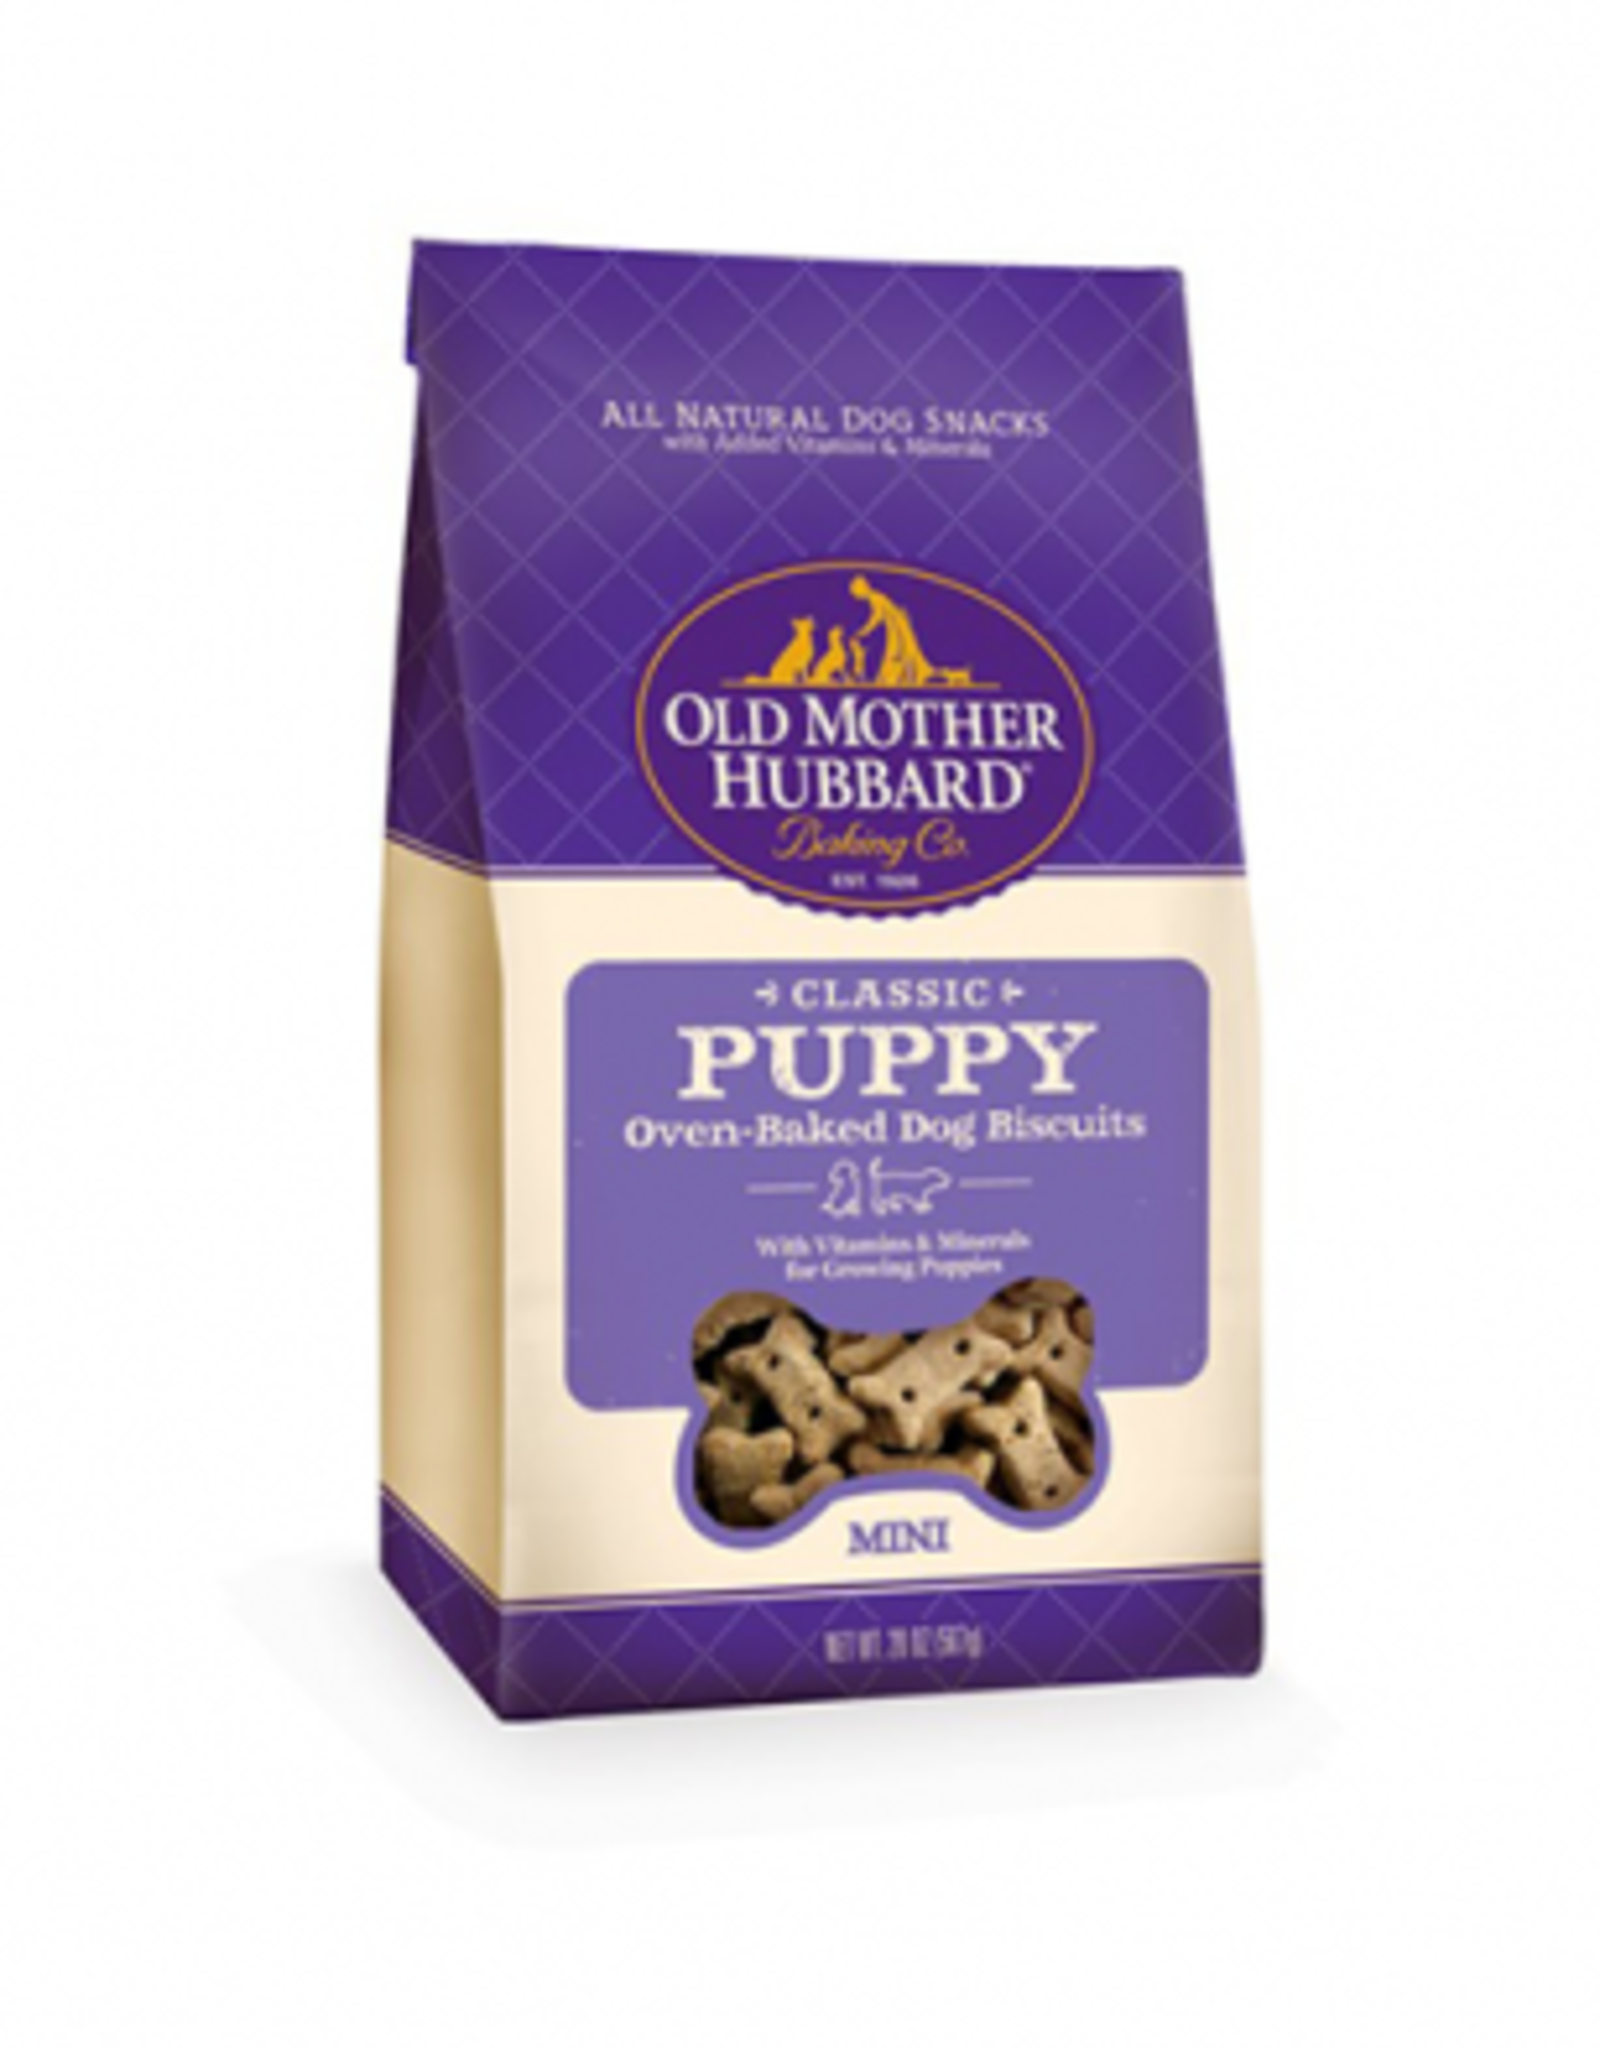 Old Mother Hubbard Puppy Mini 20 oz